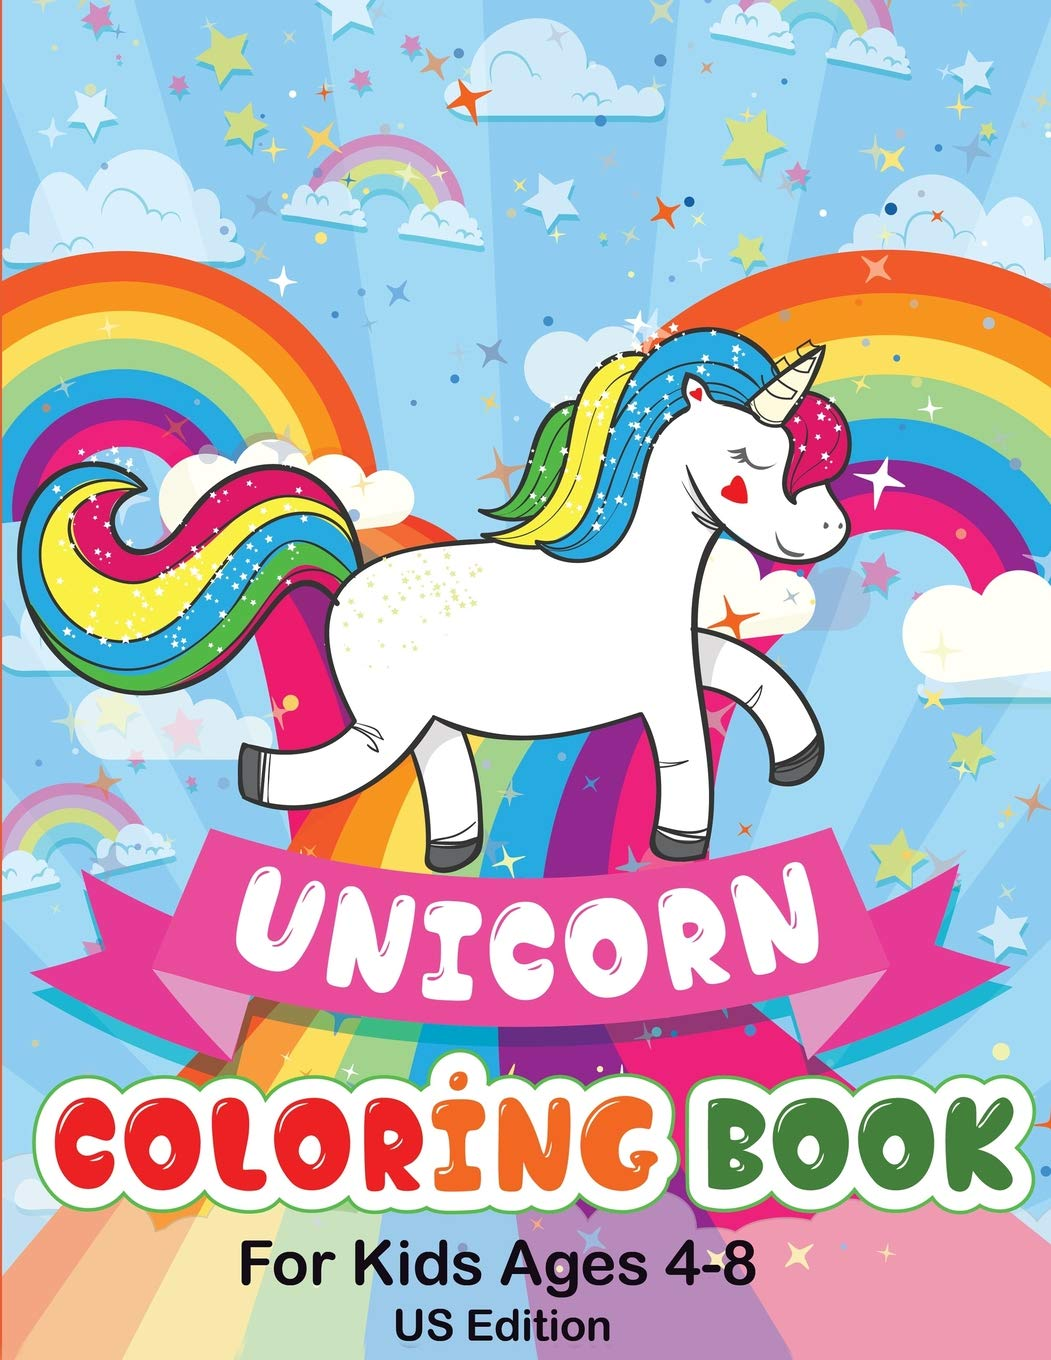 Buy Unicorn Coloring Book For Kids Ages 4 8 Us Edition 50 Pictures To Color Fun And Beautiful Unicorn Coloring Pages Books For Kids Book Online At Low Prices In India Unicorn